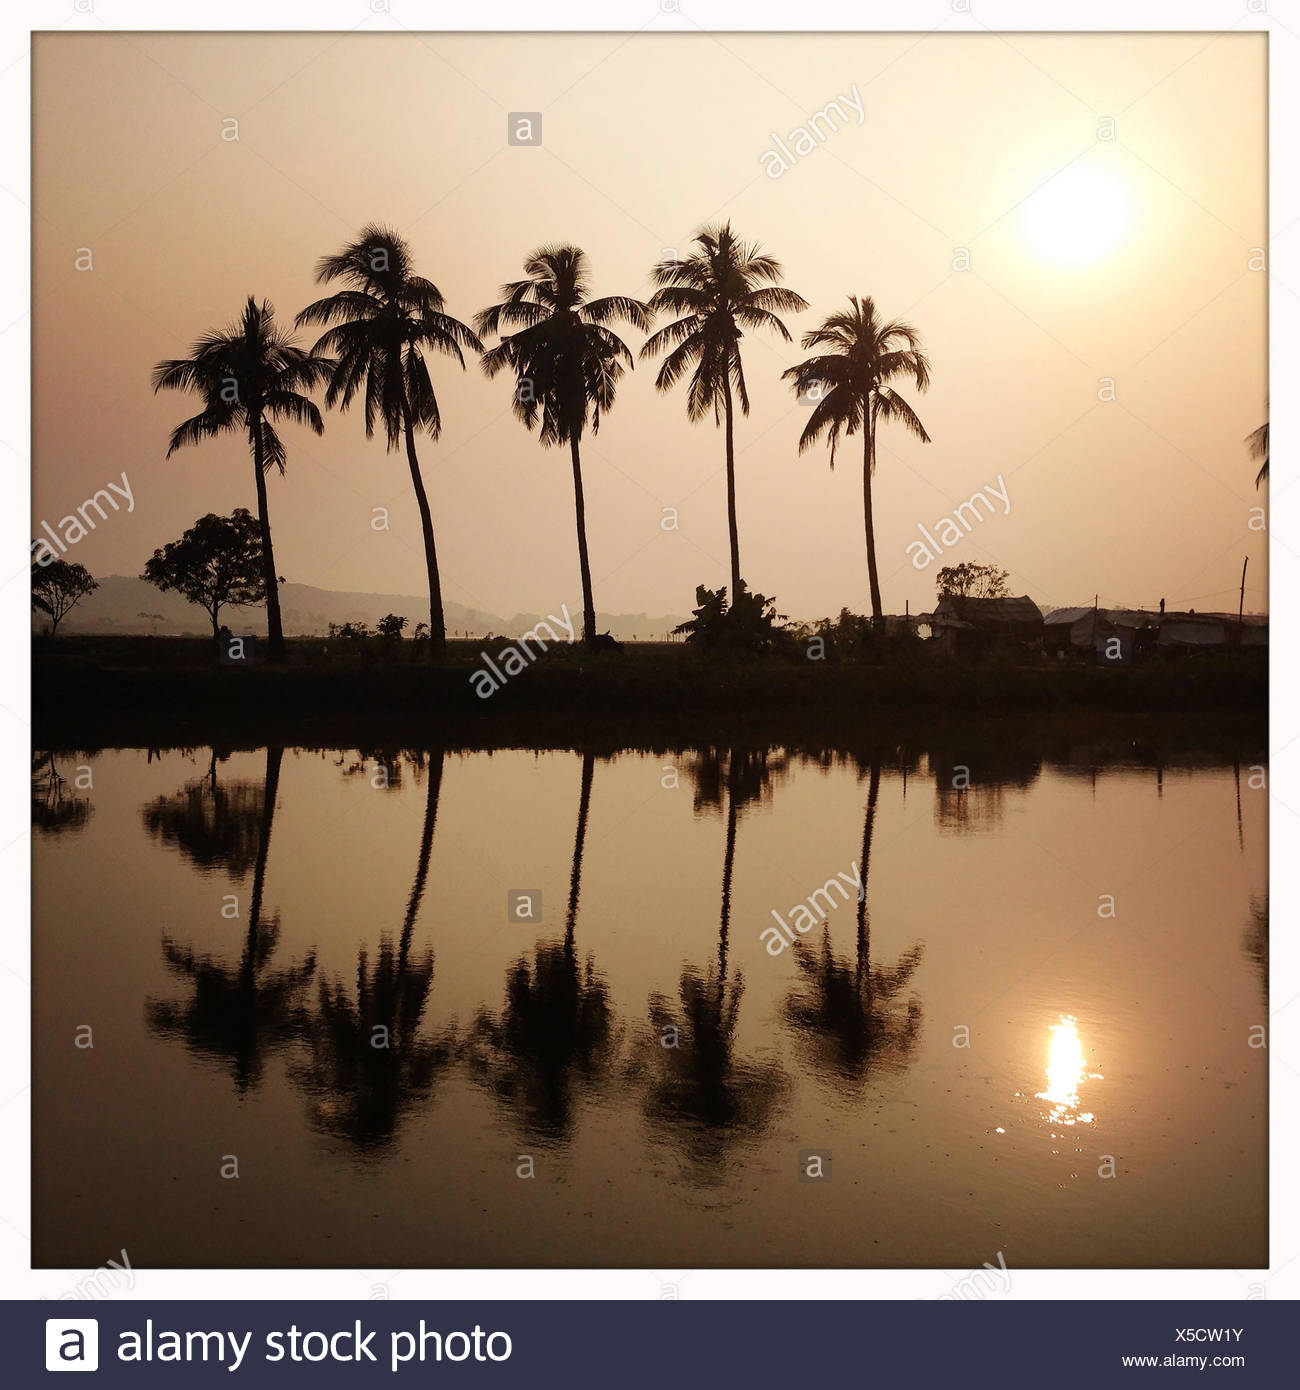 A series of palm trees stands next to wetlands in Kolkata. - Stock Image